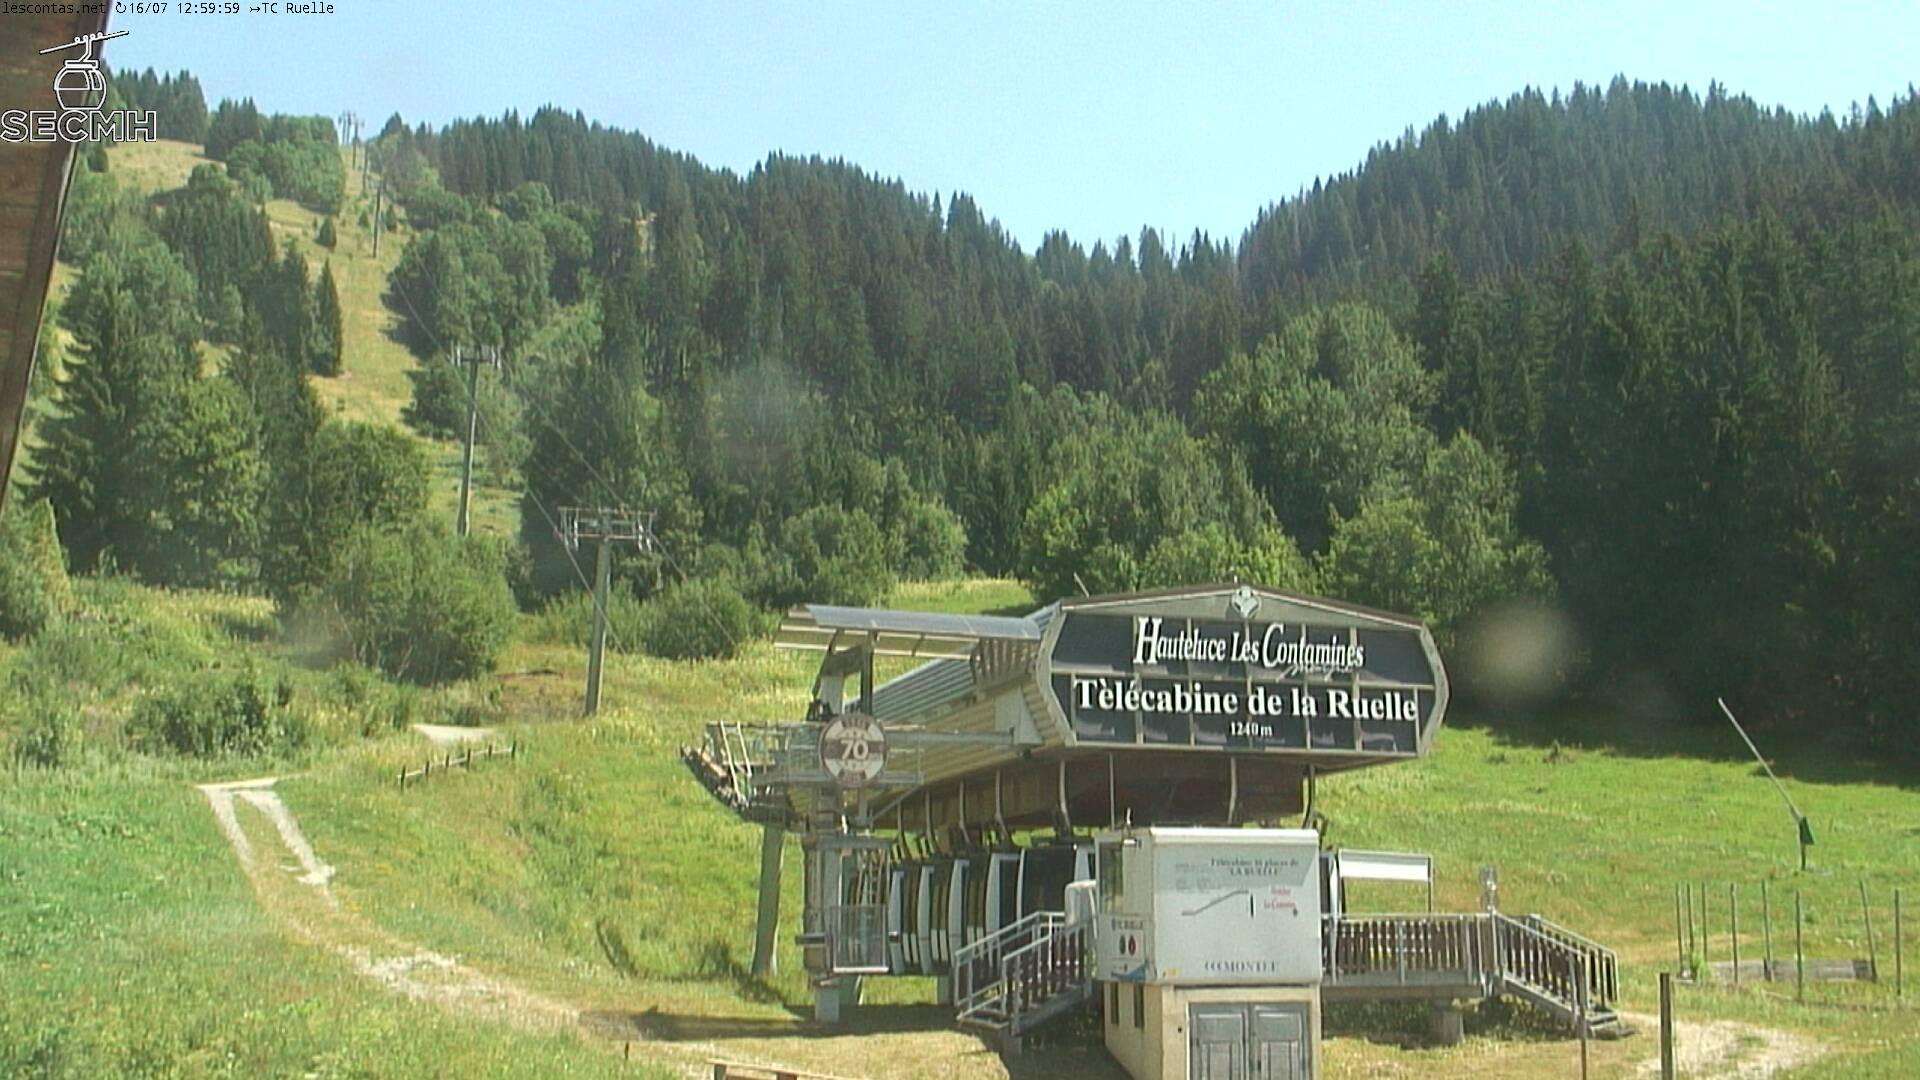 webcams de la station de ski Les Contamines